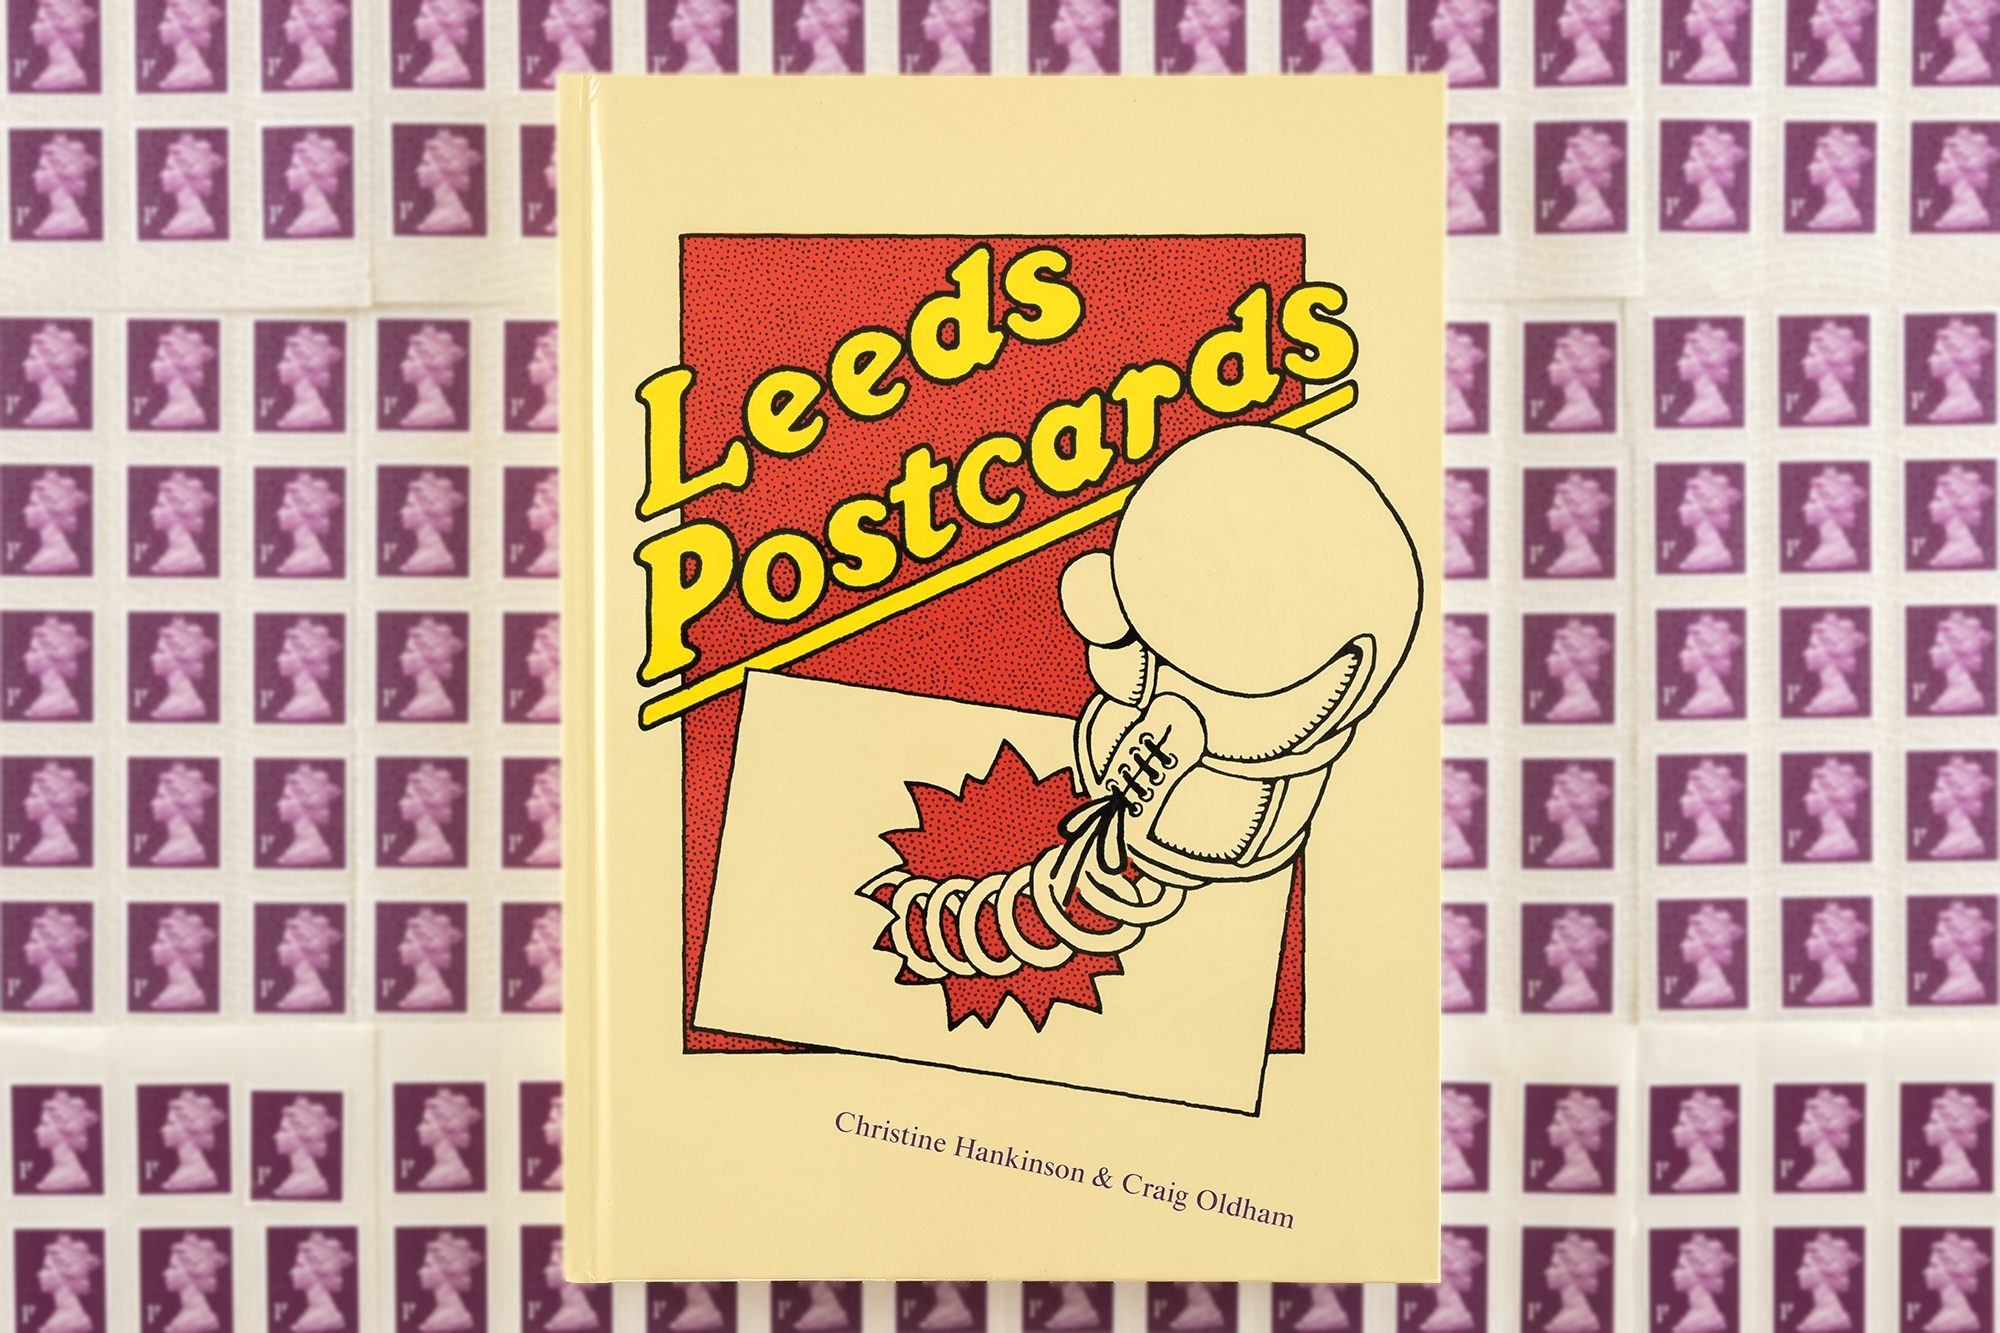 Leeds Postcards Cover Stamps3